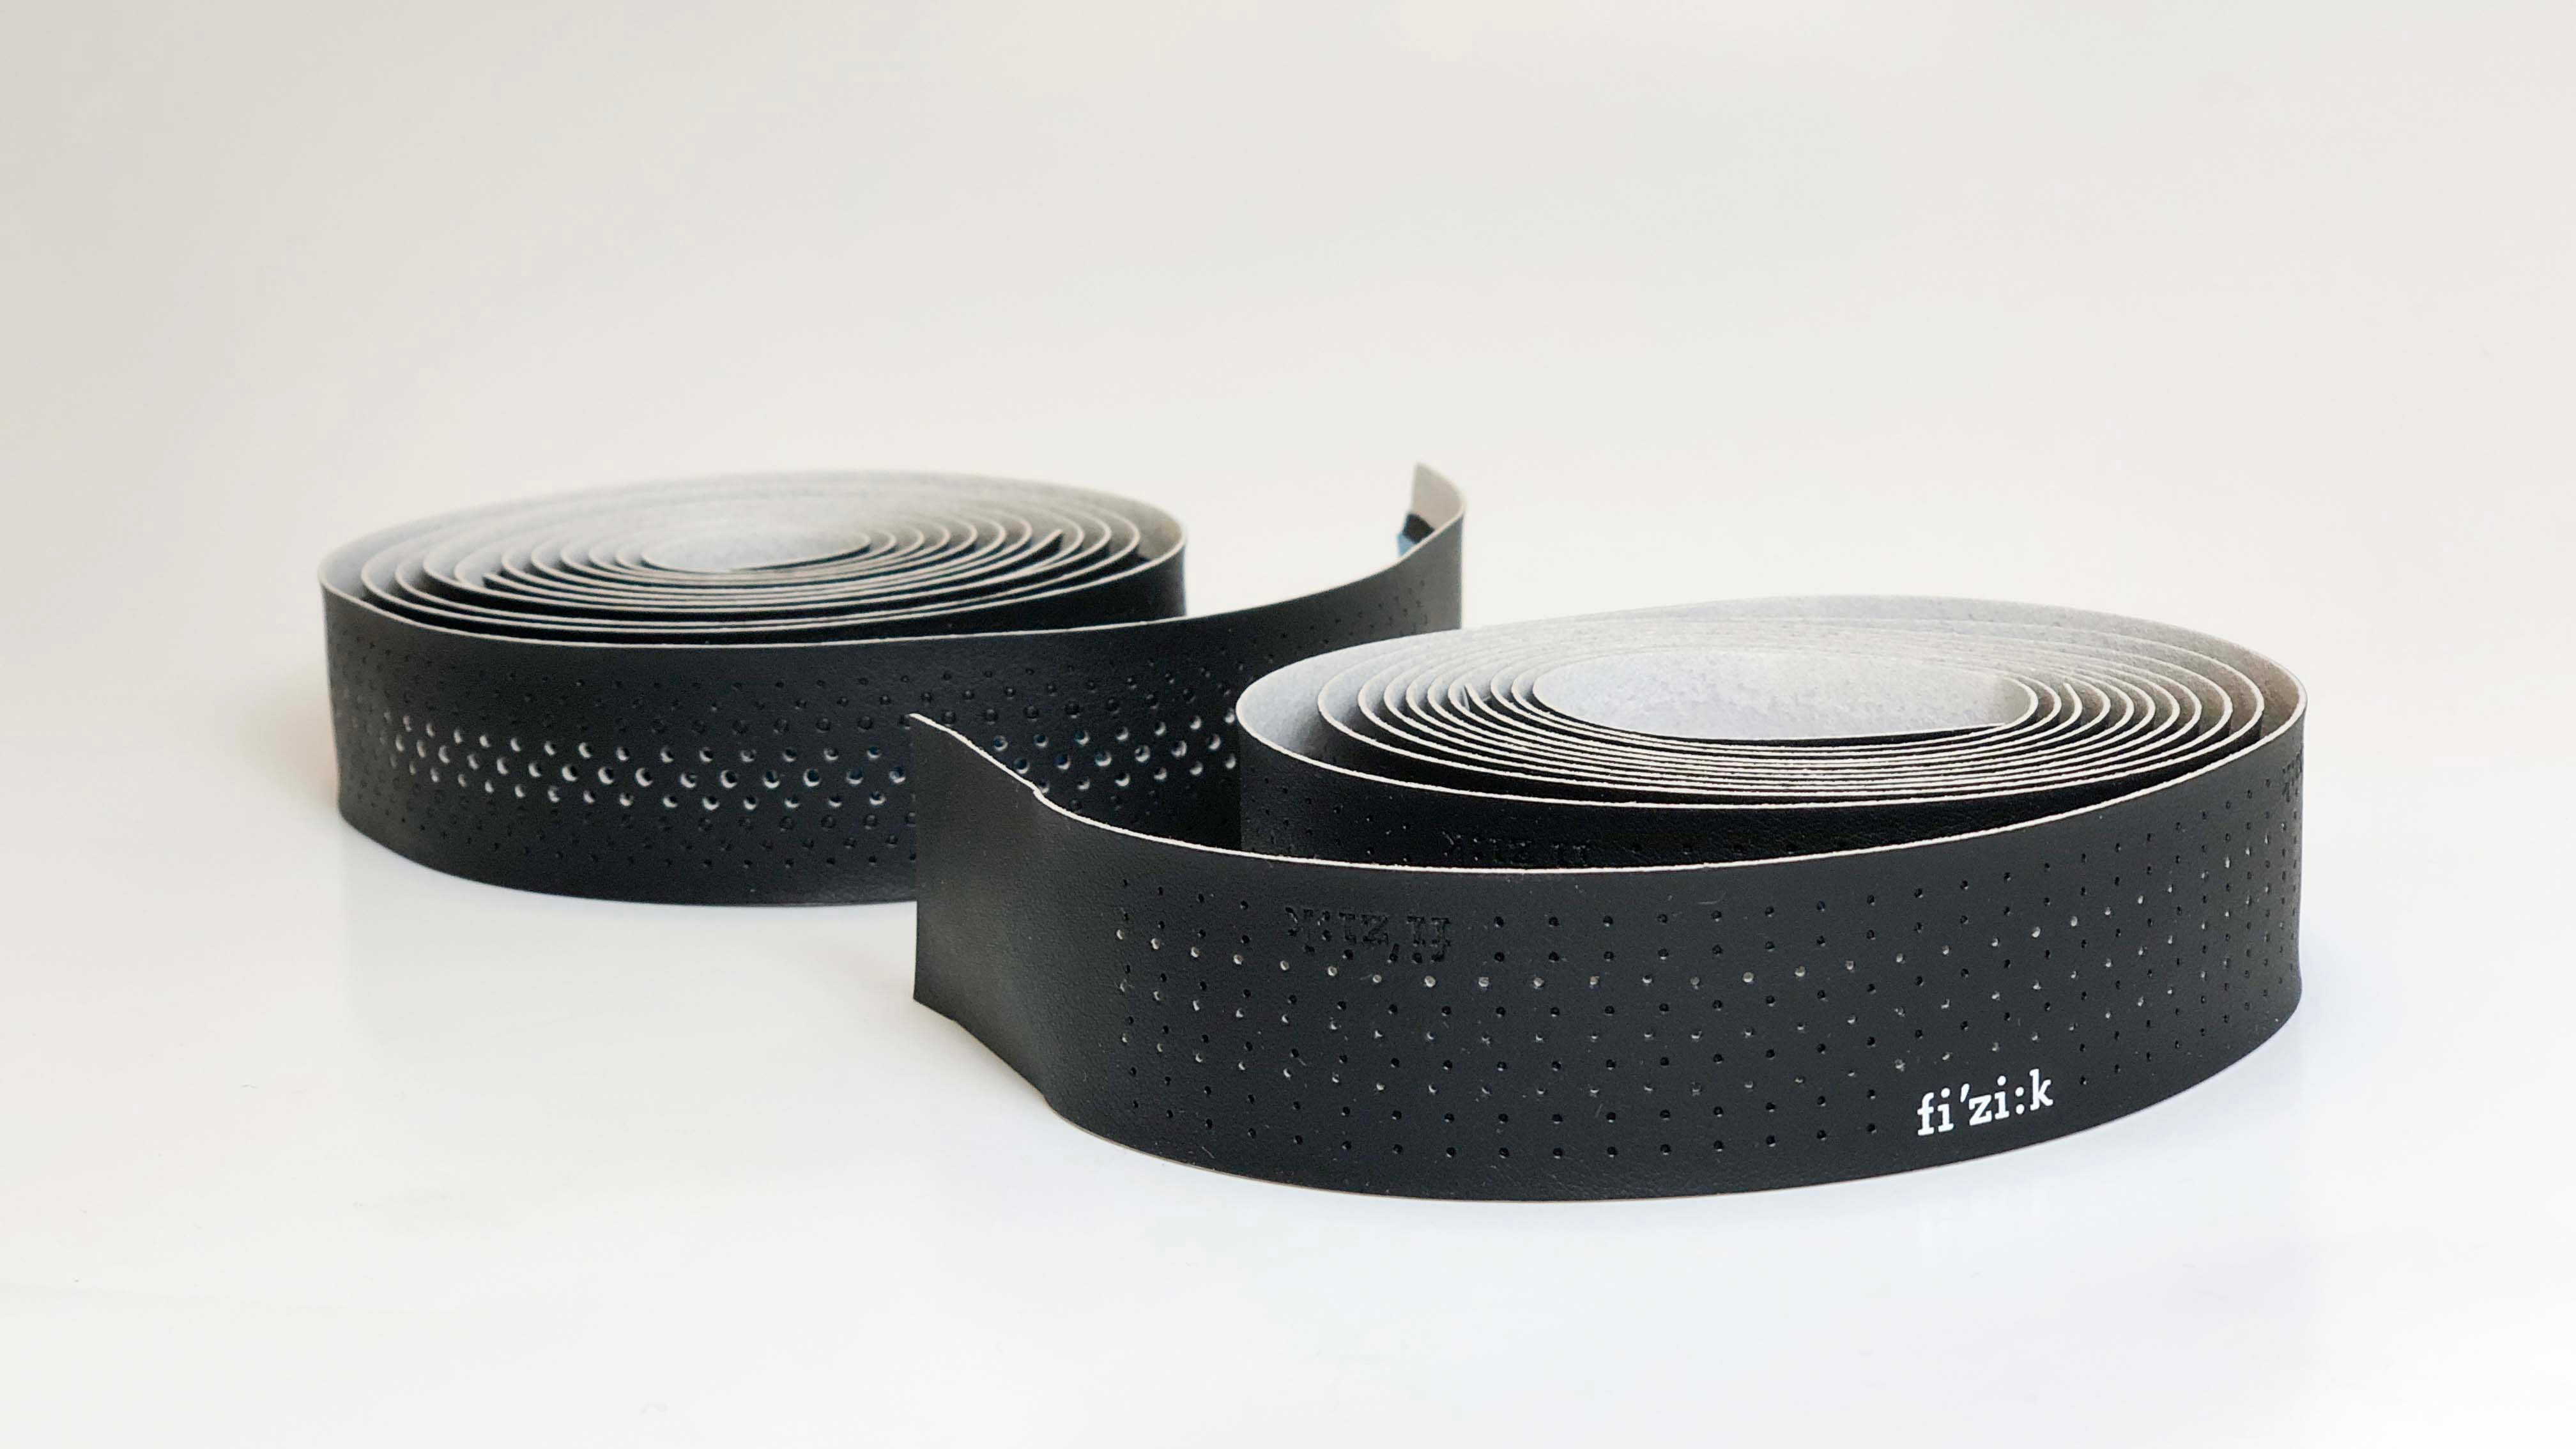 The Tempo tape is designed for sportive or casual riders